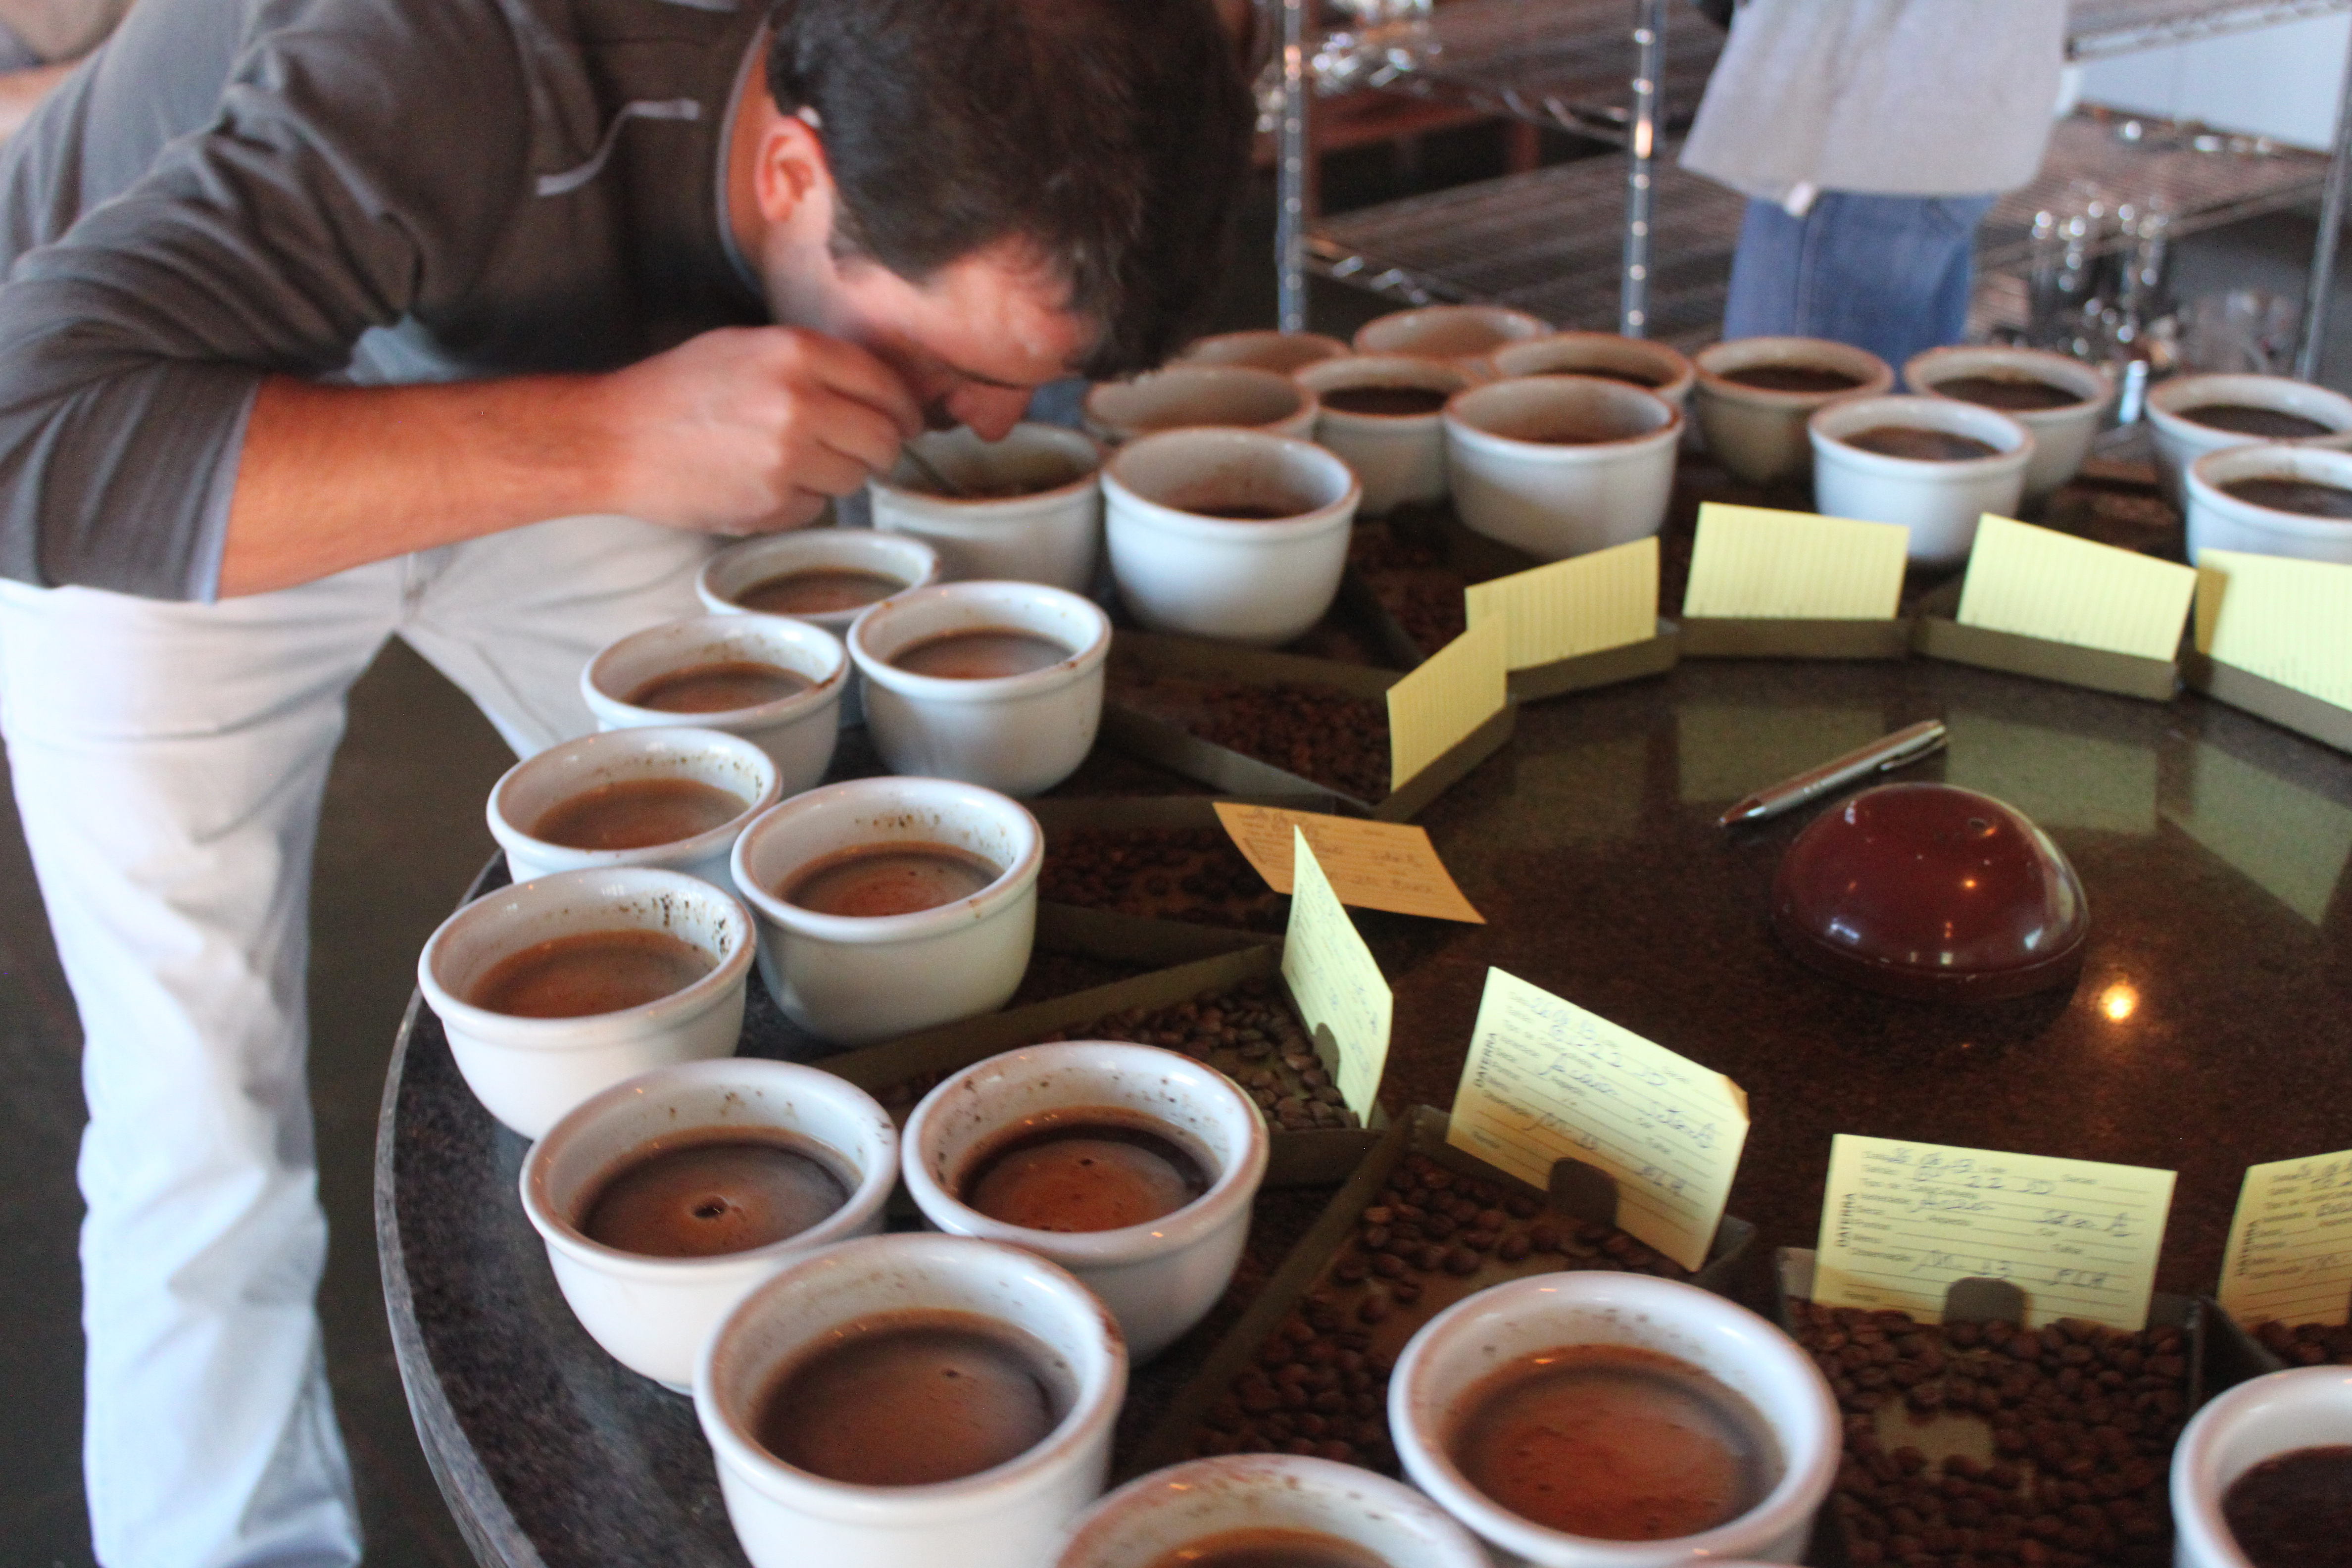 Carlinhos cupping preharvest samples